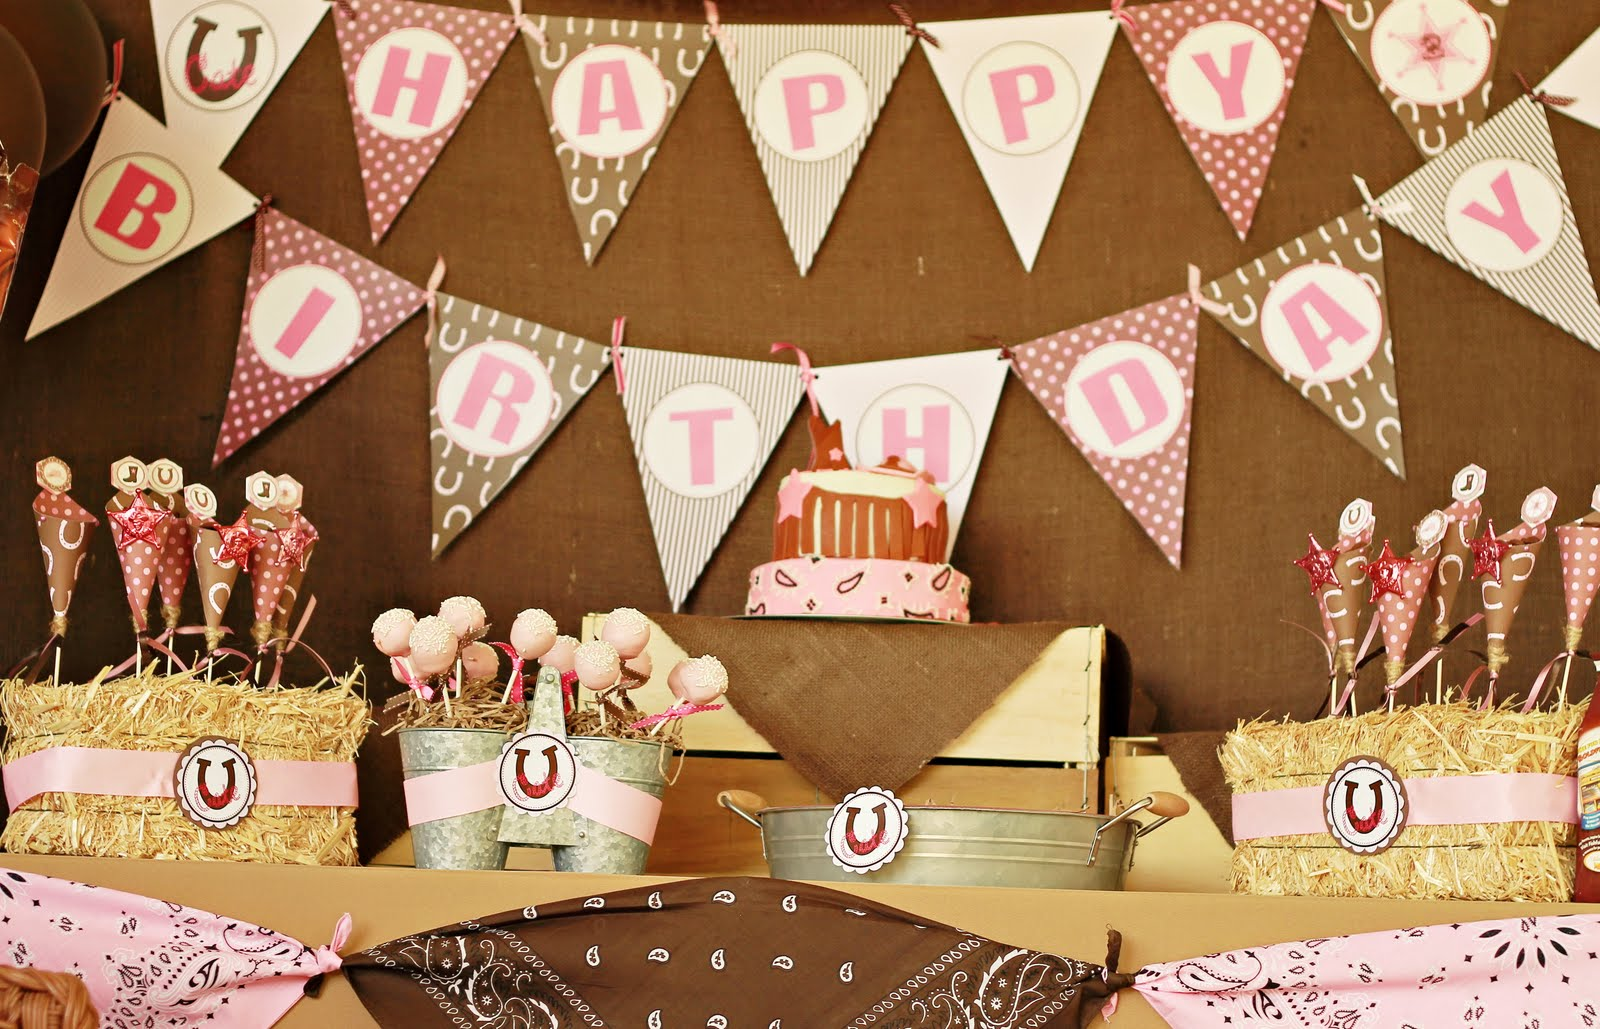 My next winning party feature goes to this adorable PINK COWGIRL 2ND BIRTHDAY PARTY submitted by Pluff Mudd Studio! Isnu0027t this party just darling? & Karau0027s Party Ideas Pink Cowgirl Party! | Karau0027s Party Ideas